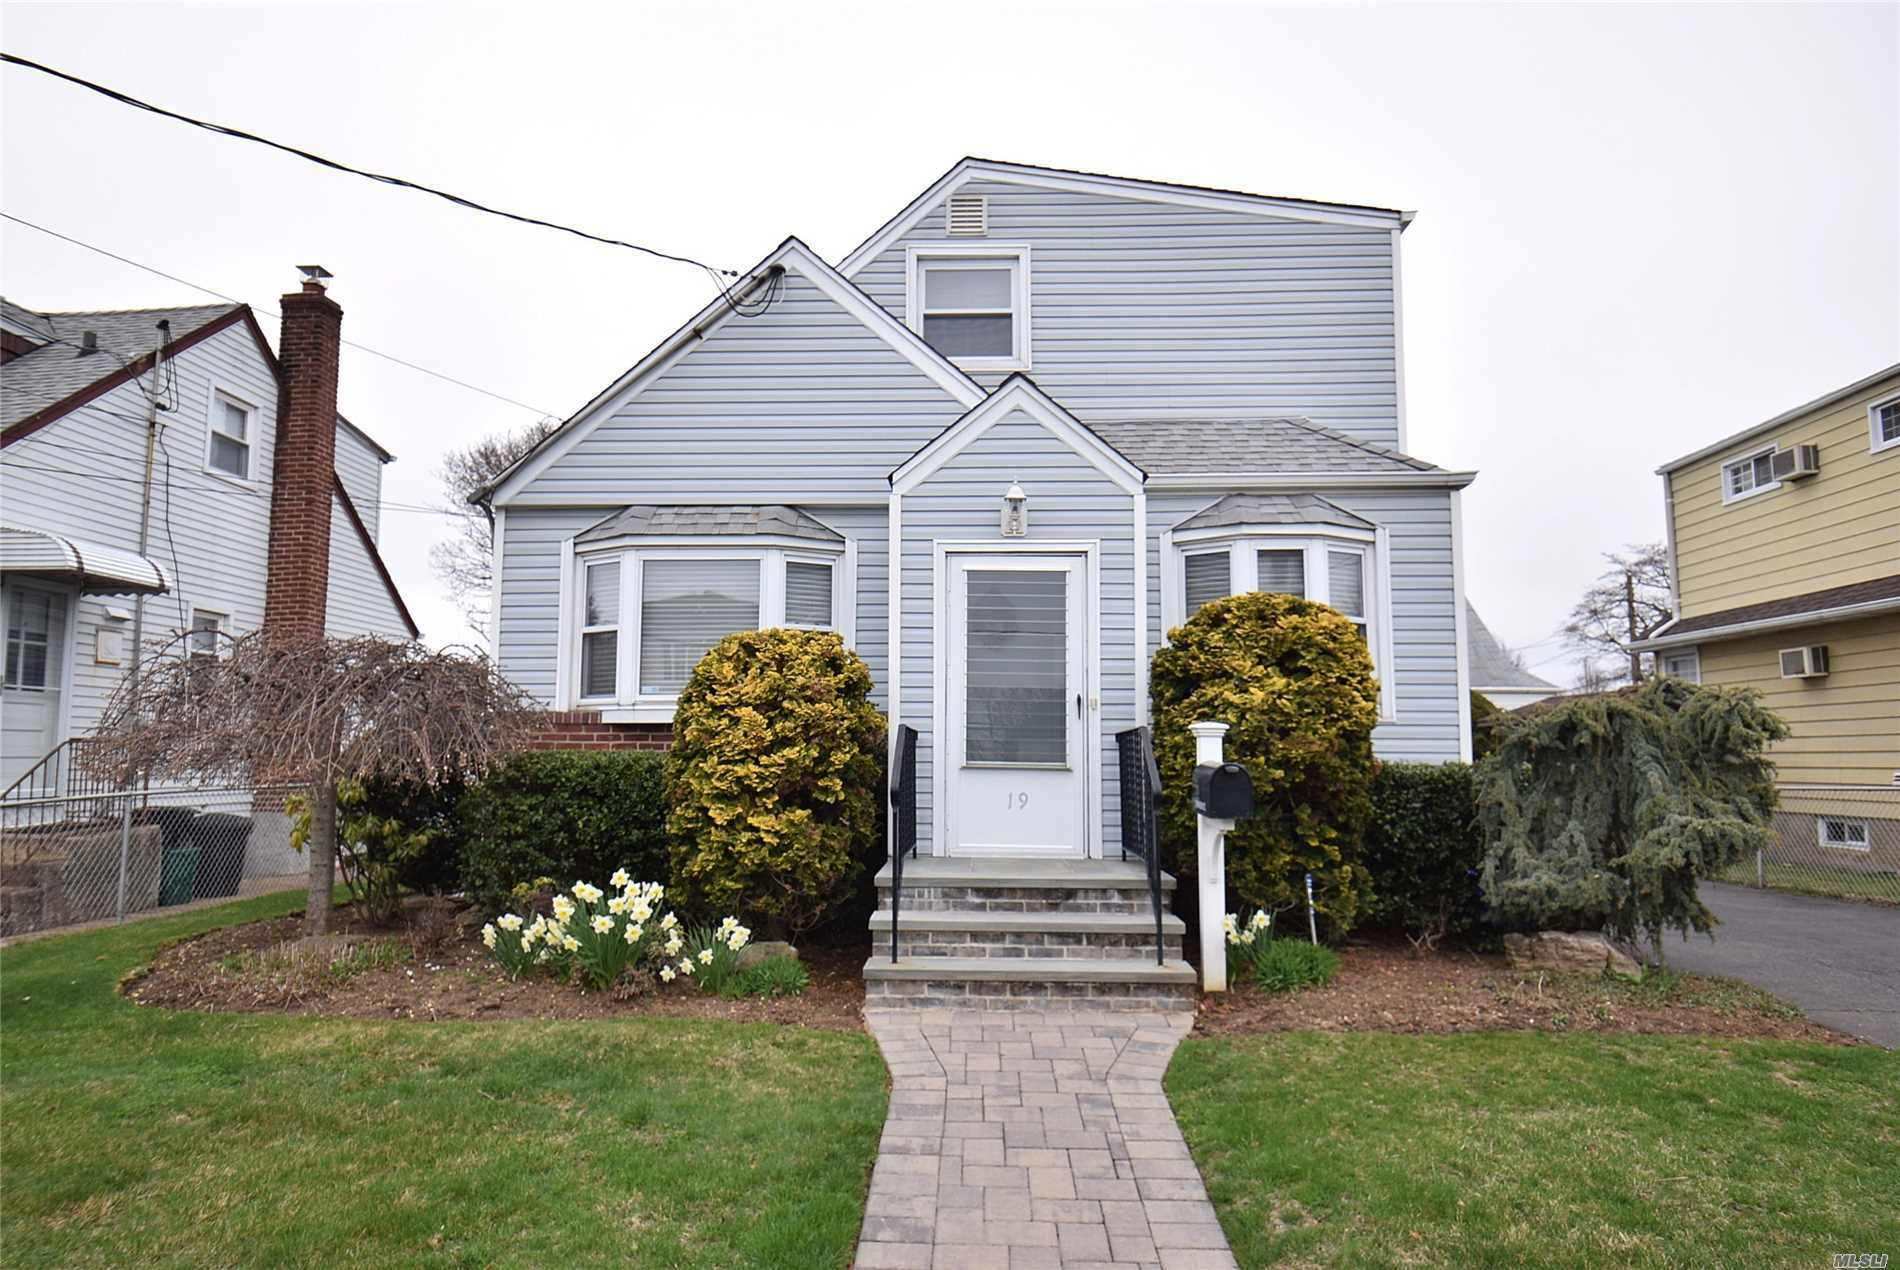 Lovely 4BR Cape, Living Rm, Dining Area, Kitchen, 2Full bths, Full partially finished basement. Great Location, walk to Greiss Park & LIRR.